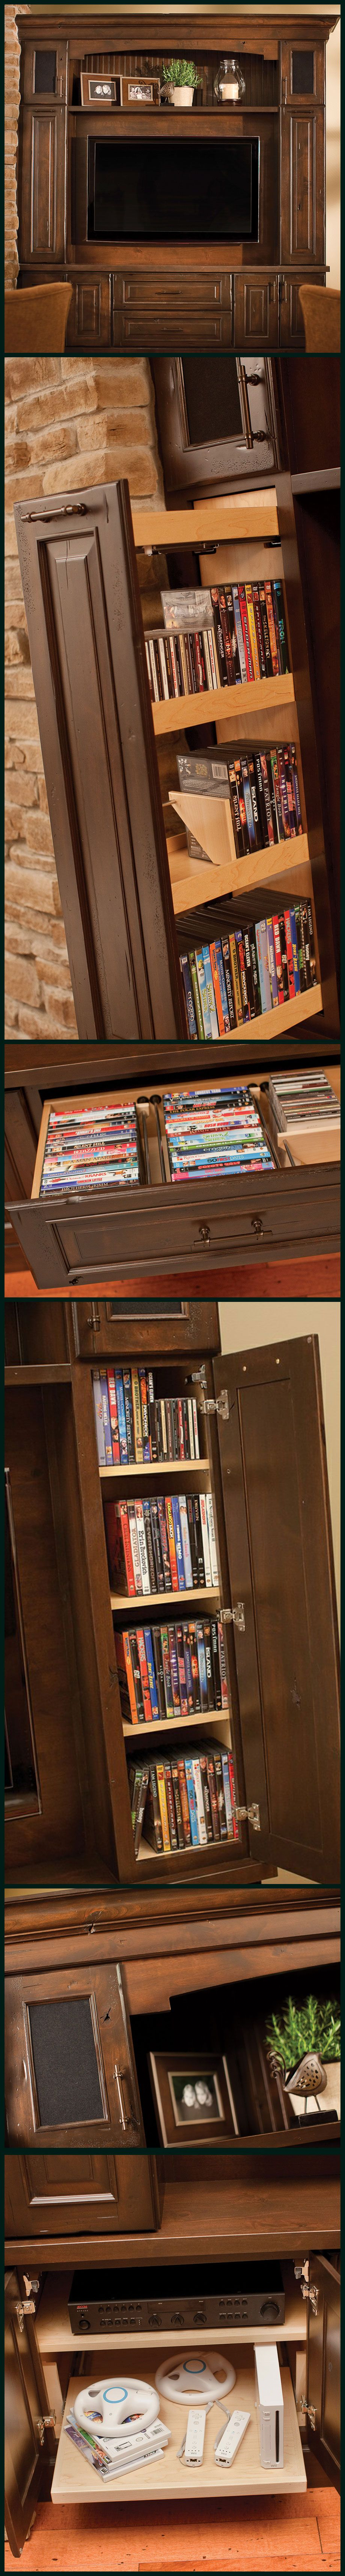 17 Diy Entertainment Center Ideas And Designs For Your New Home Built Fuse Box Think Out Of The Design An With Storage Whole Family Surround System Speaker Game Roll Shelves